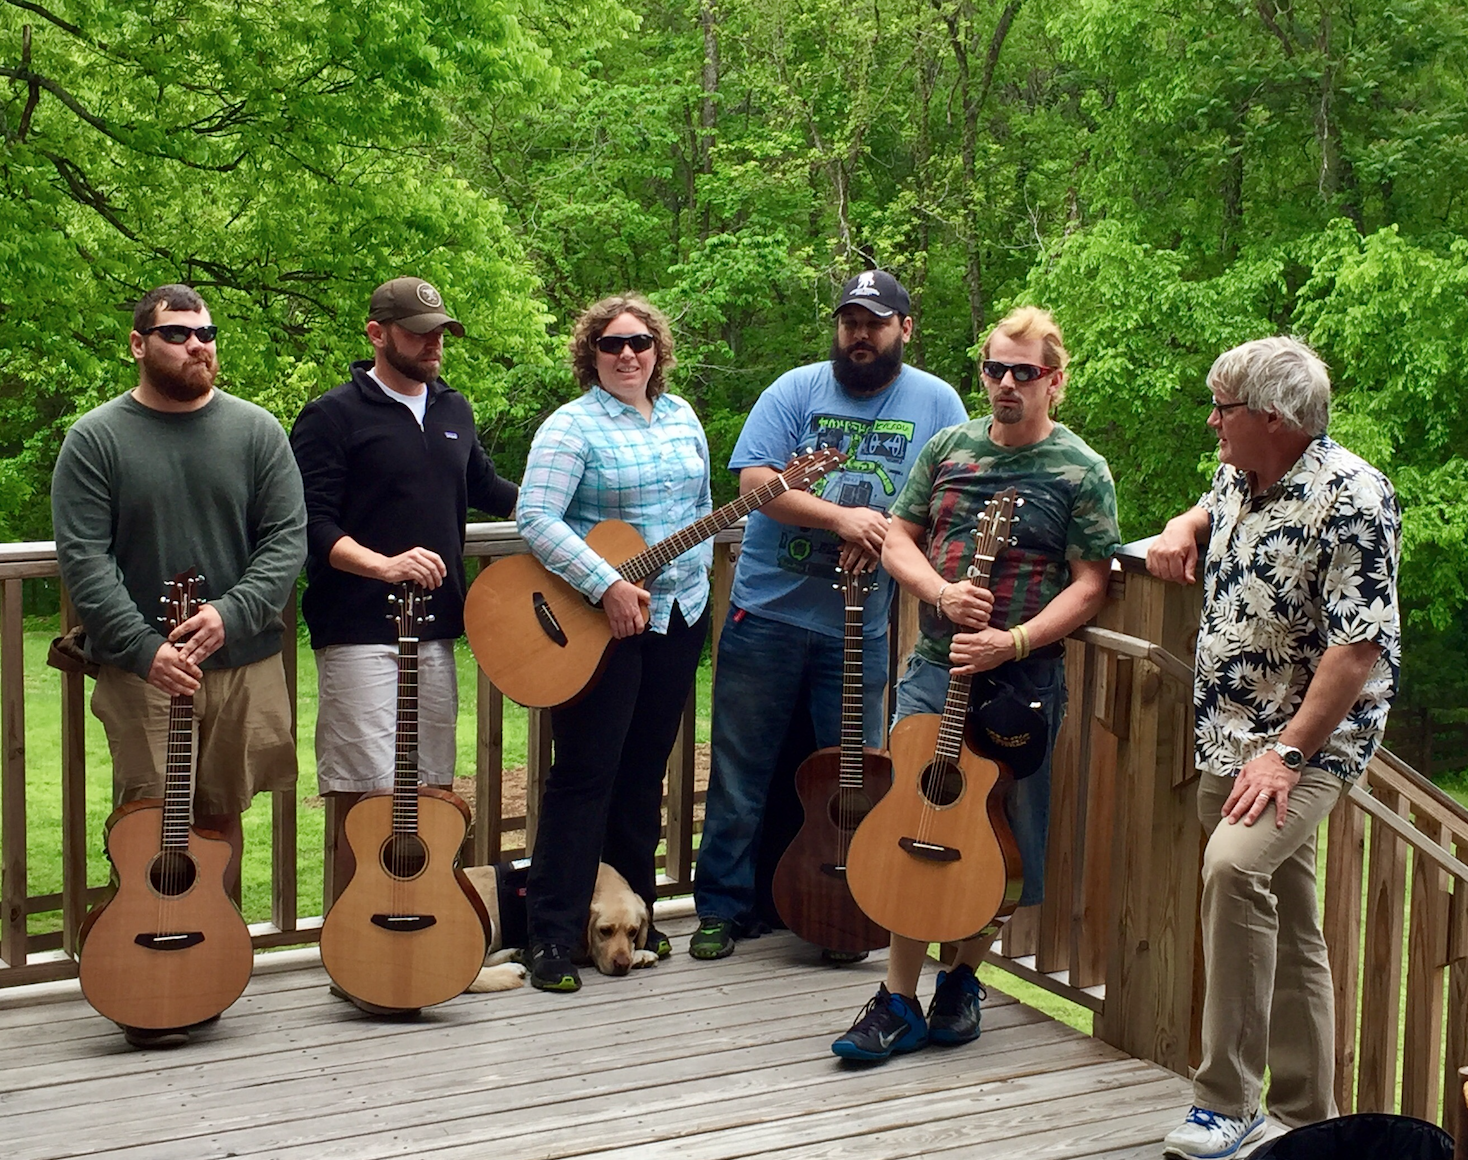 Participants with their new Breedlove guitars courtesy of Two Old Hippies.